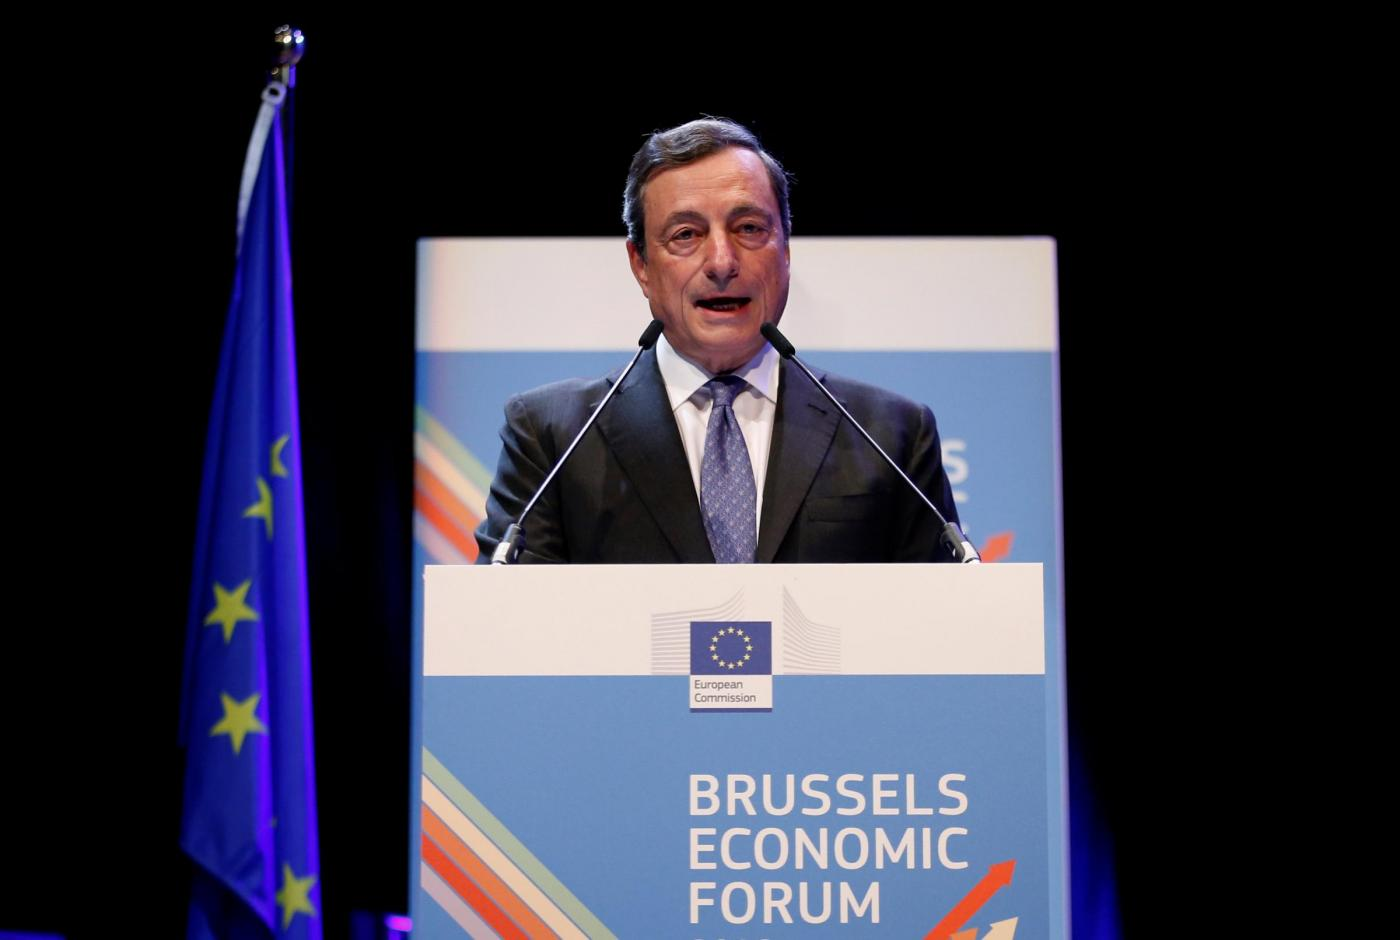 Bruxelles, l'intervento di Mario Draghi all'Economic Forum